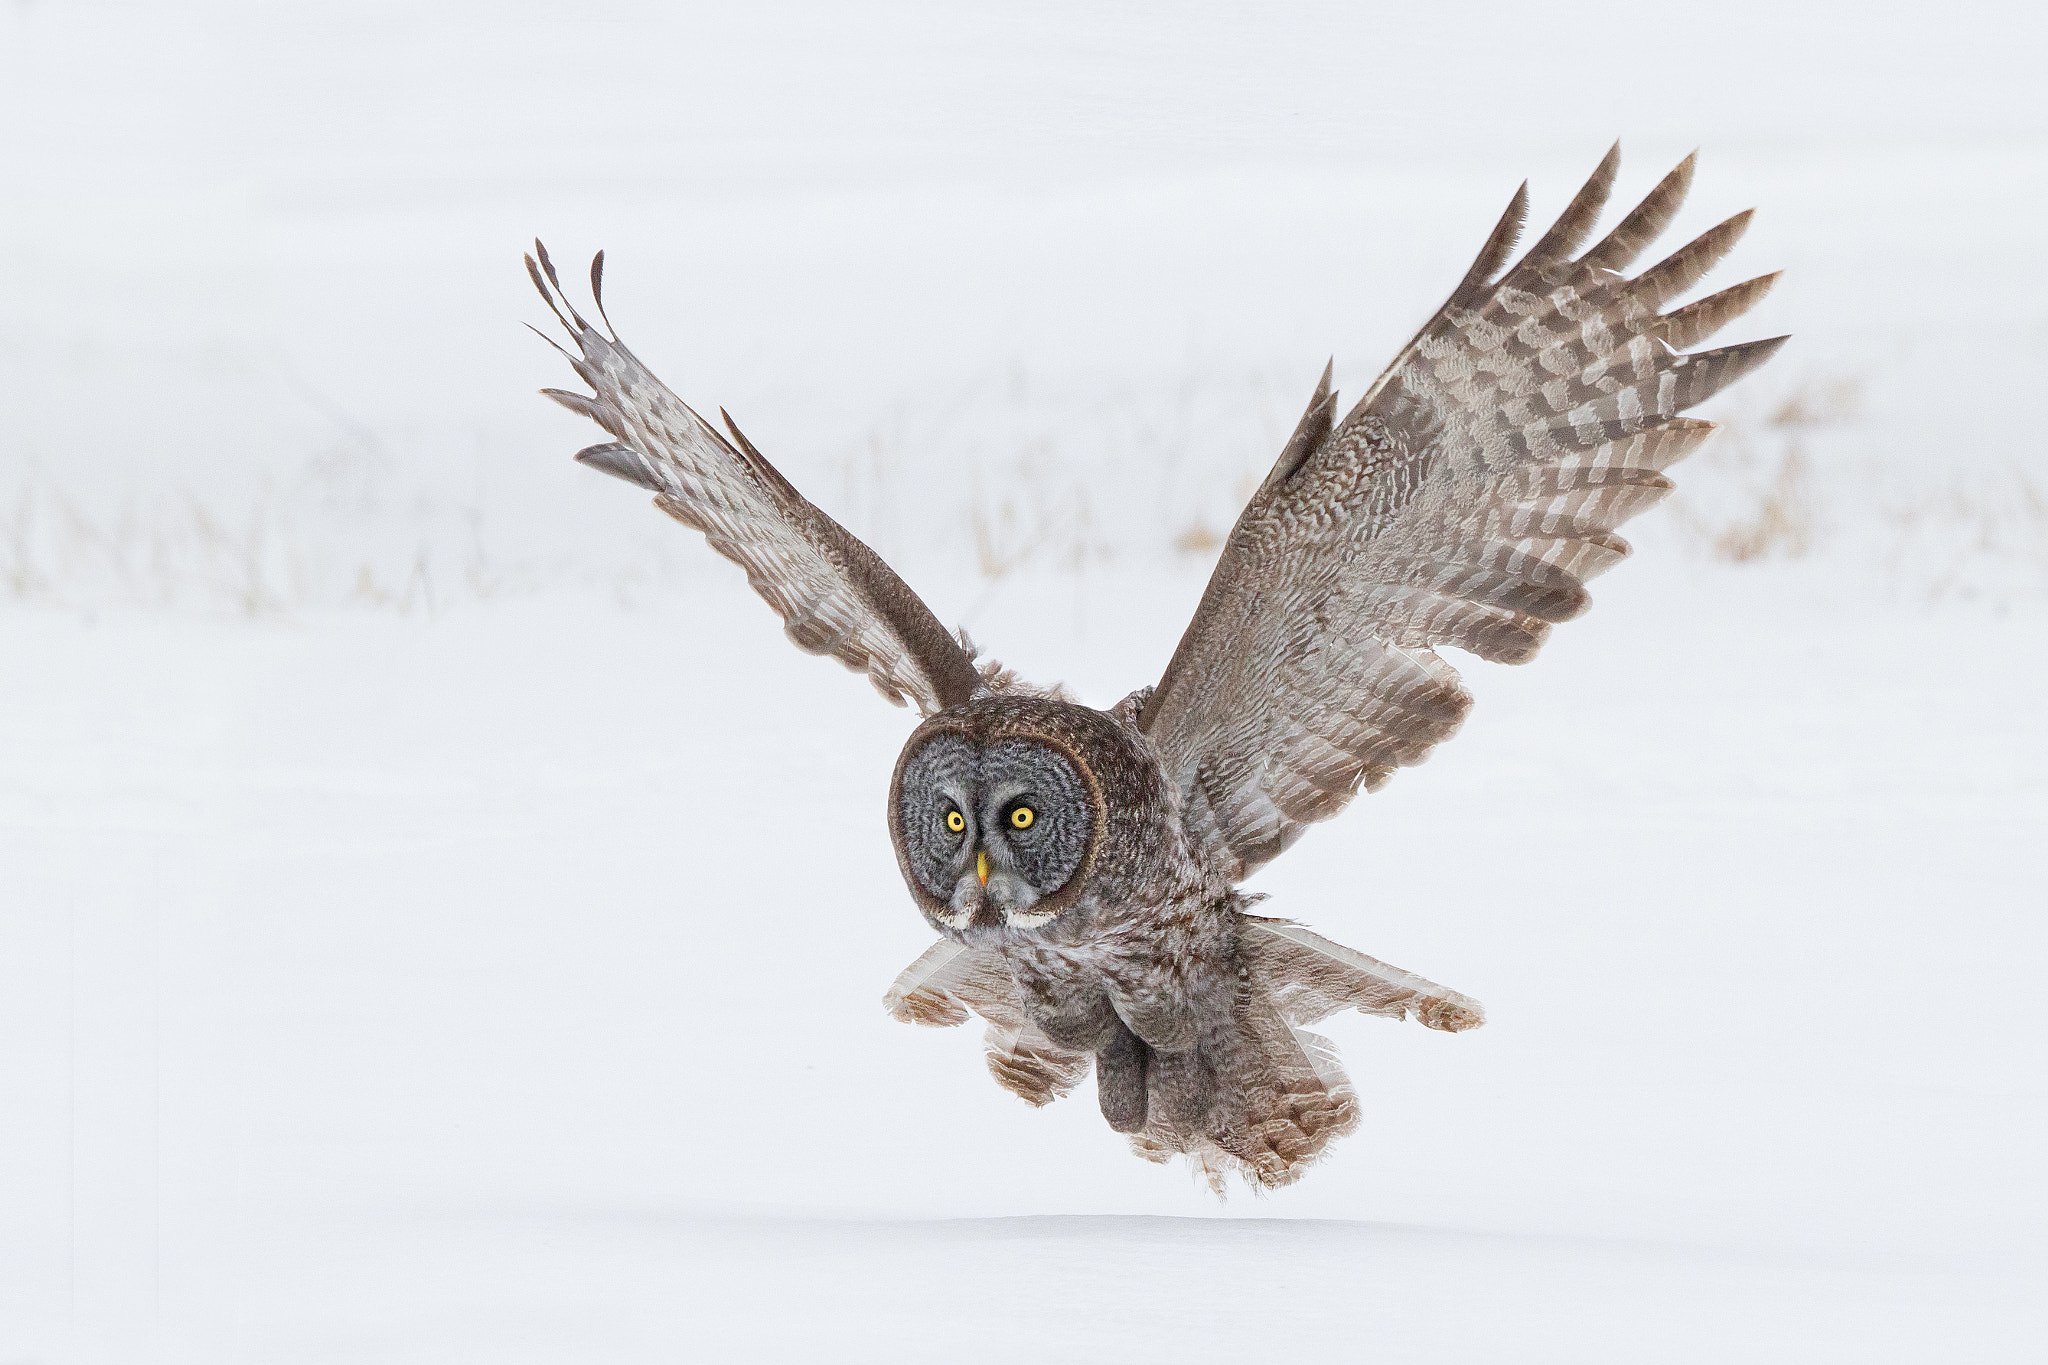 Photograph Great Gray Owl Approach. by Daniel Cadieux on 500px